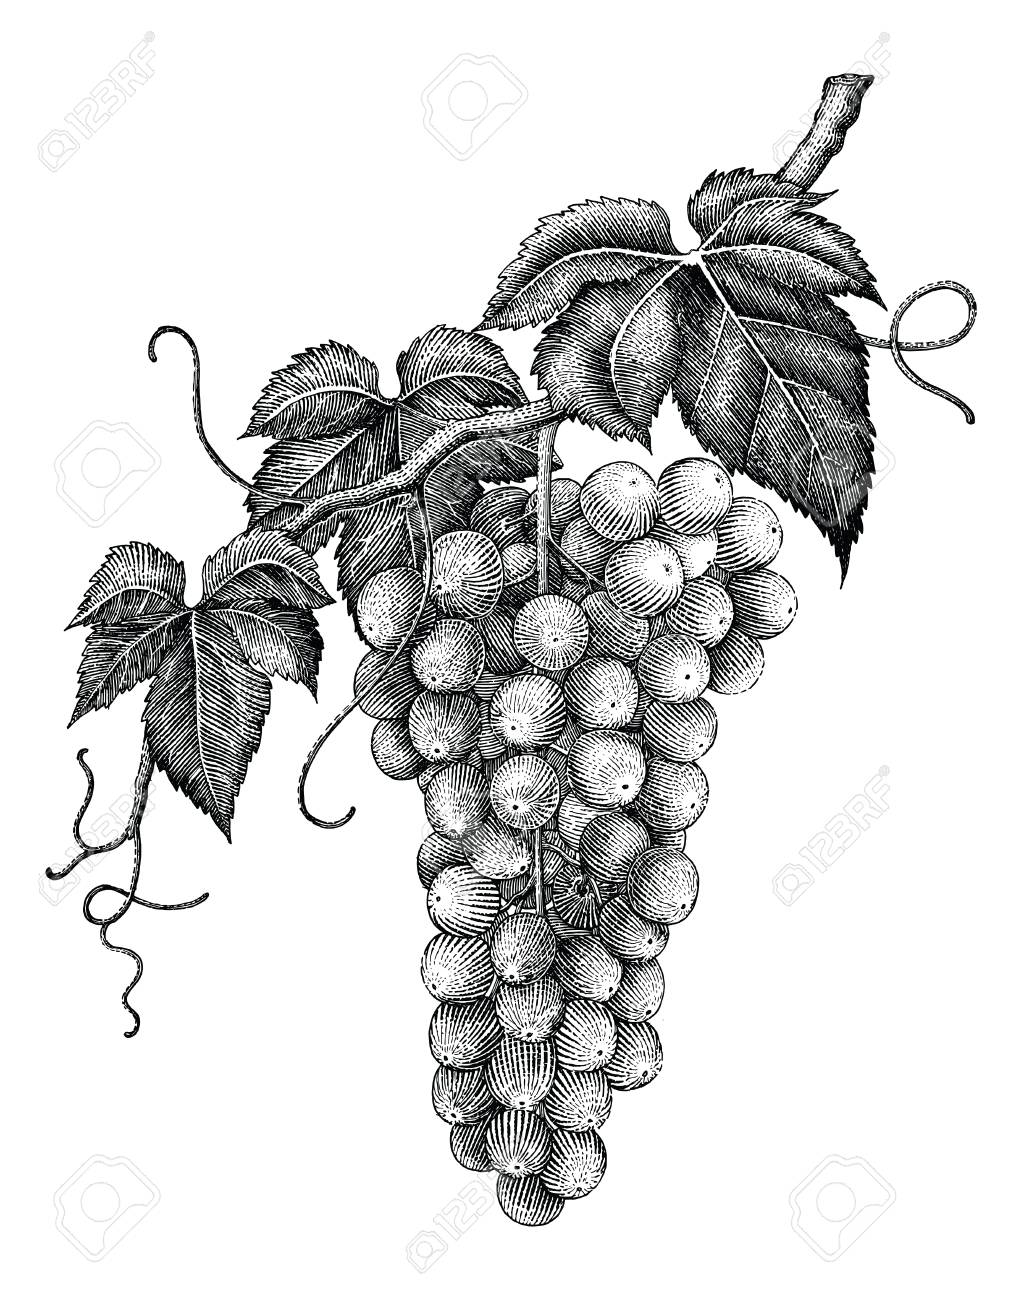 Grape branch hand drawing engraving vintage isolated on white background - 102871126